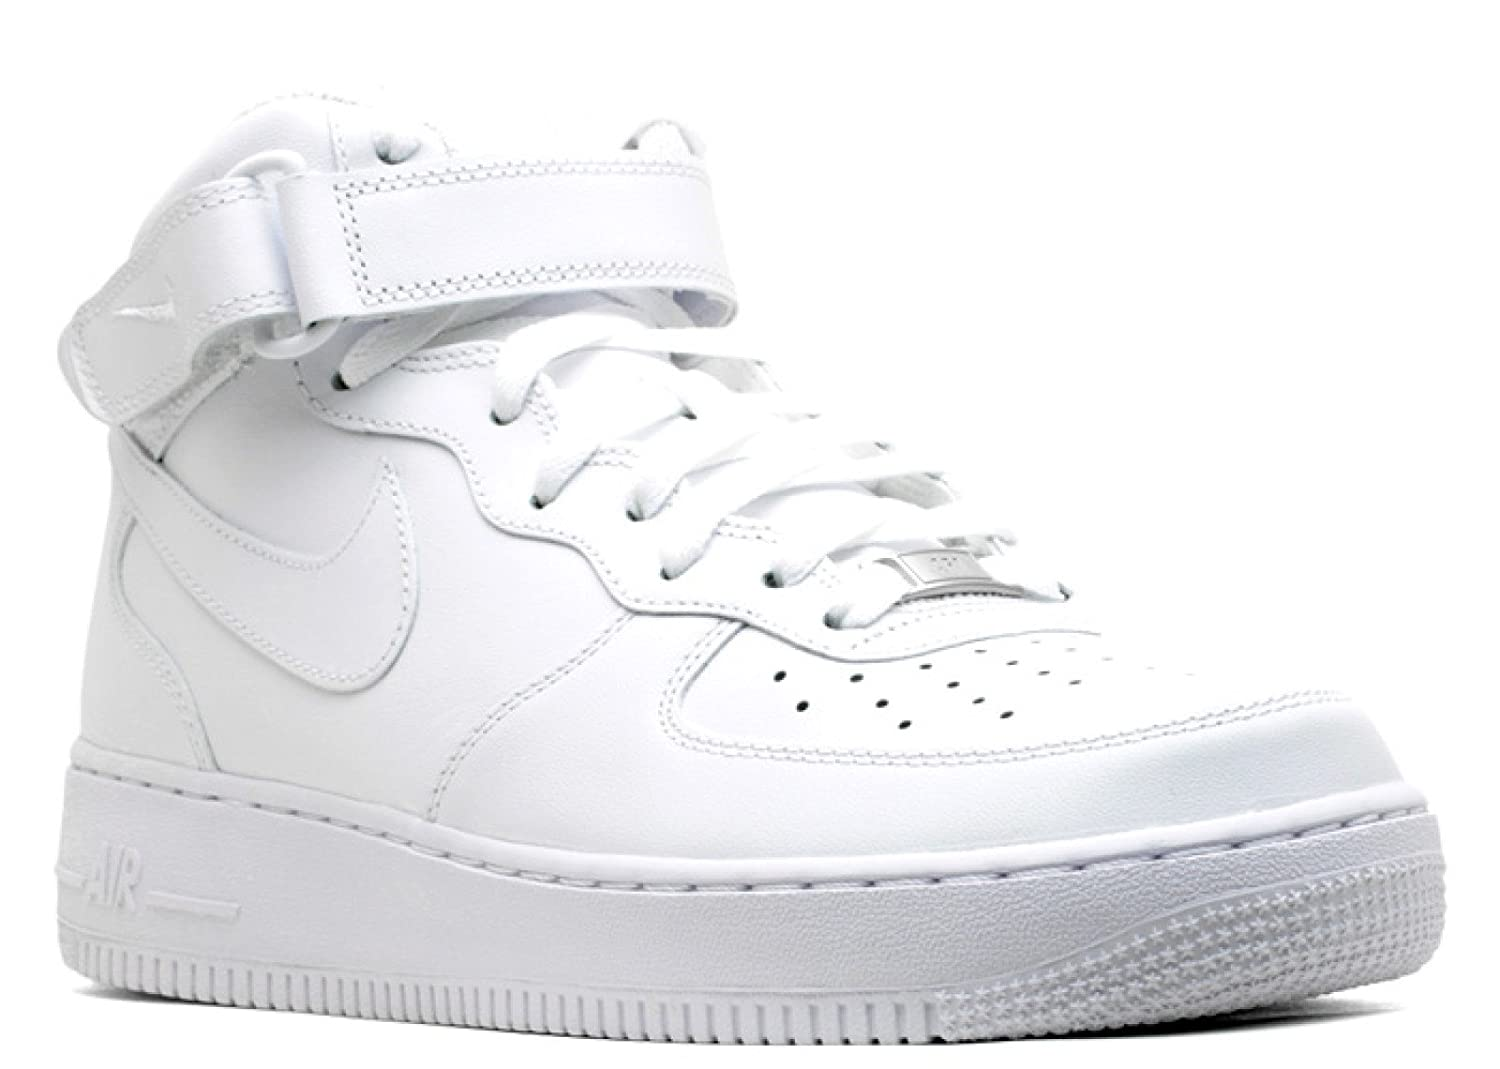 new concept c02b0 12654 Nike Herren Air Force 1 Mid 07 Basketballschuhe 12 White, White -  sommerprogramme.de